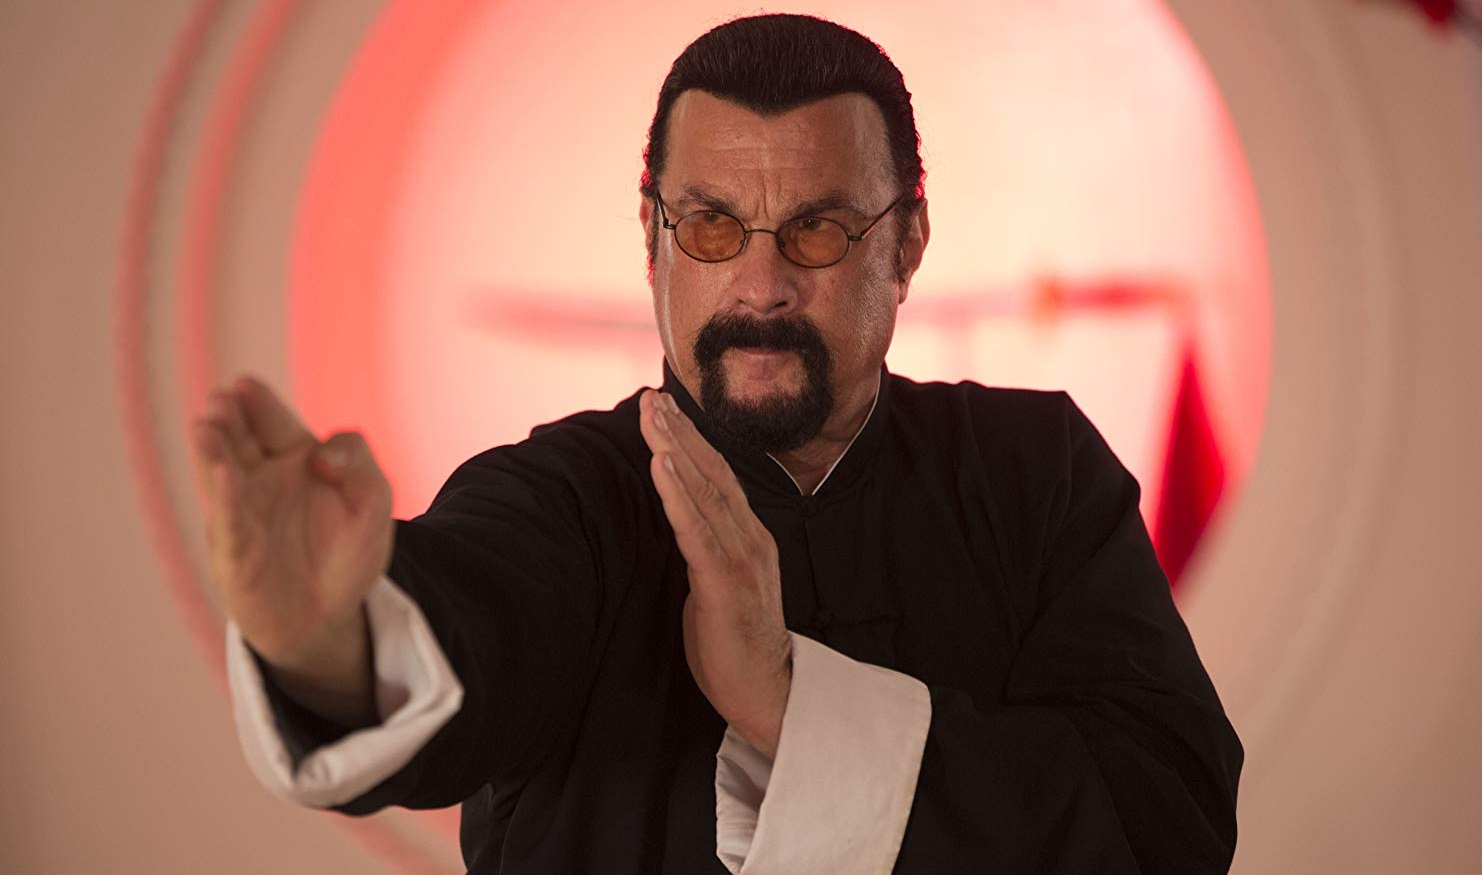 Steven Seagal in Attrition (2018)